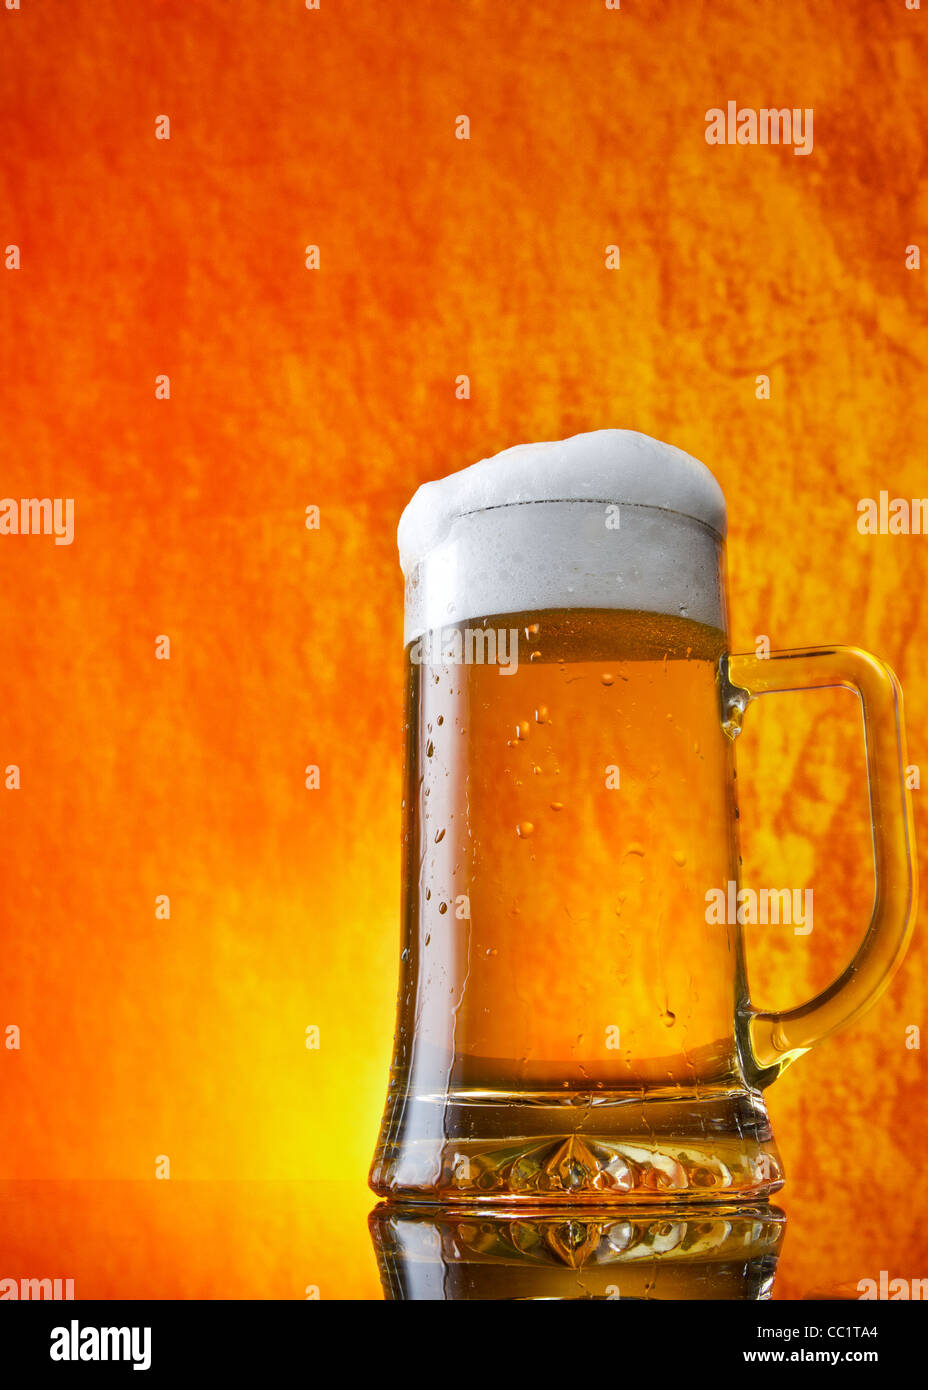 Glass of beer close-up with froth over orange background - Stock Image